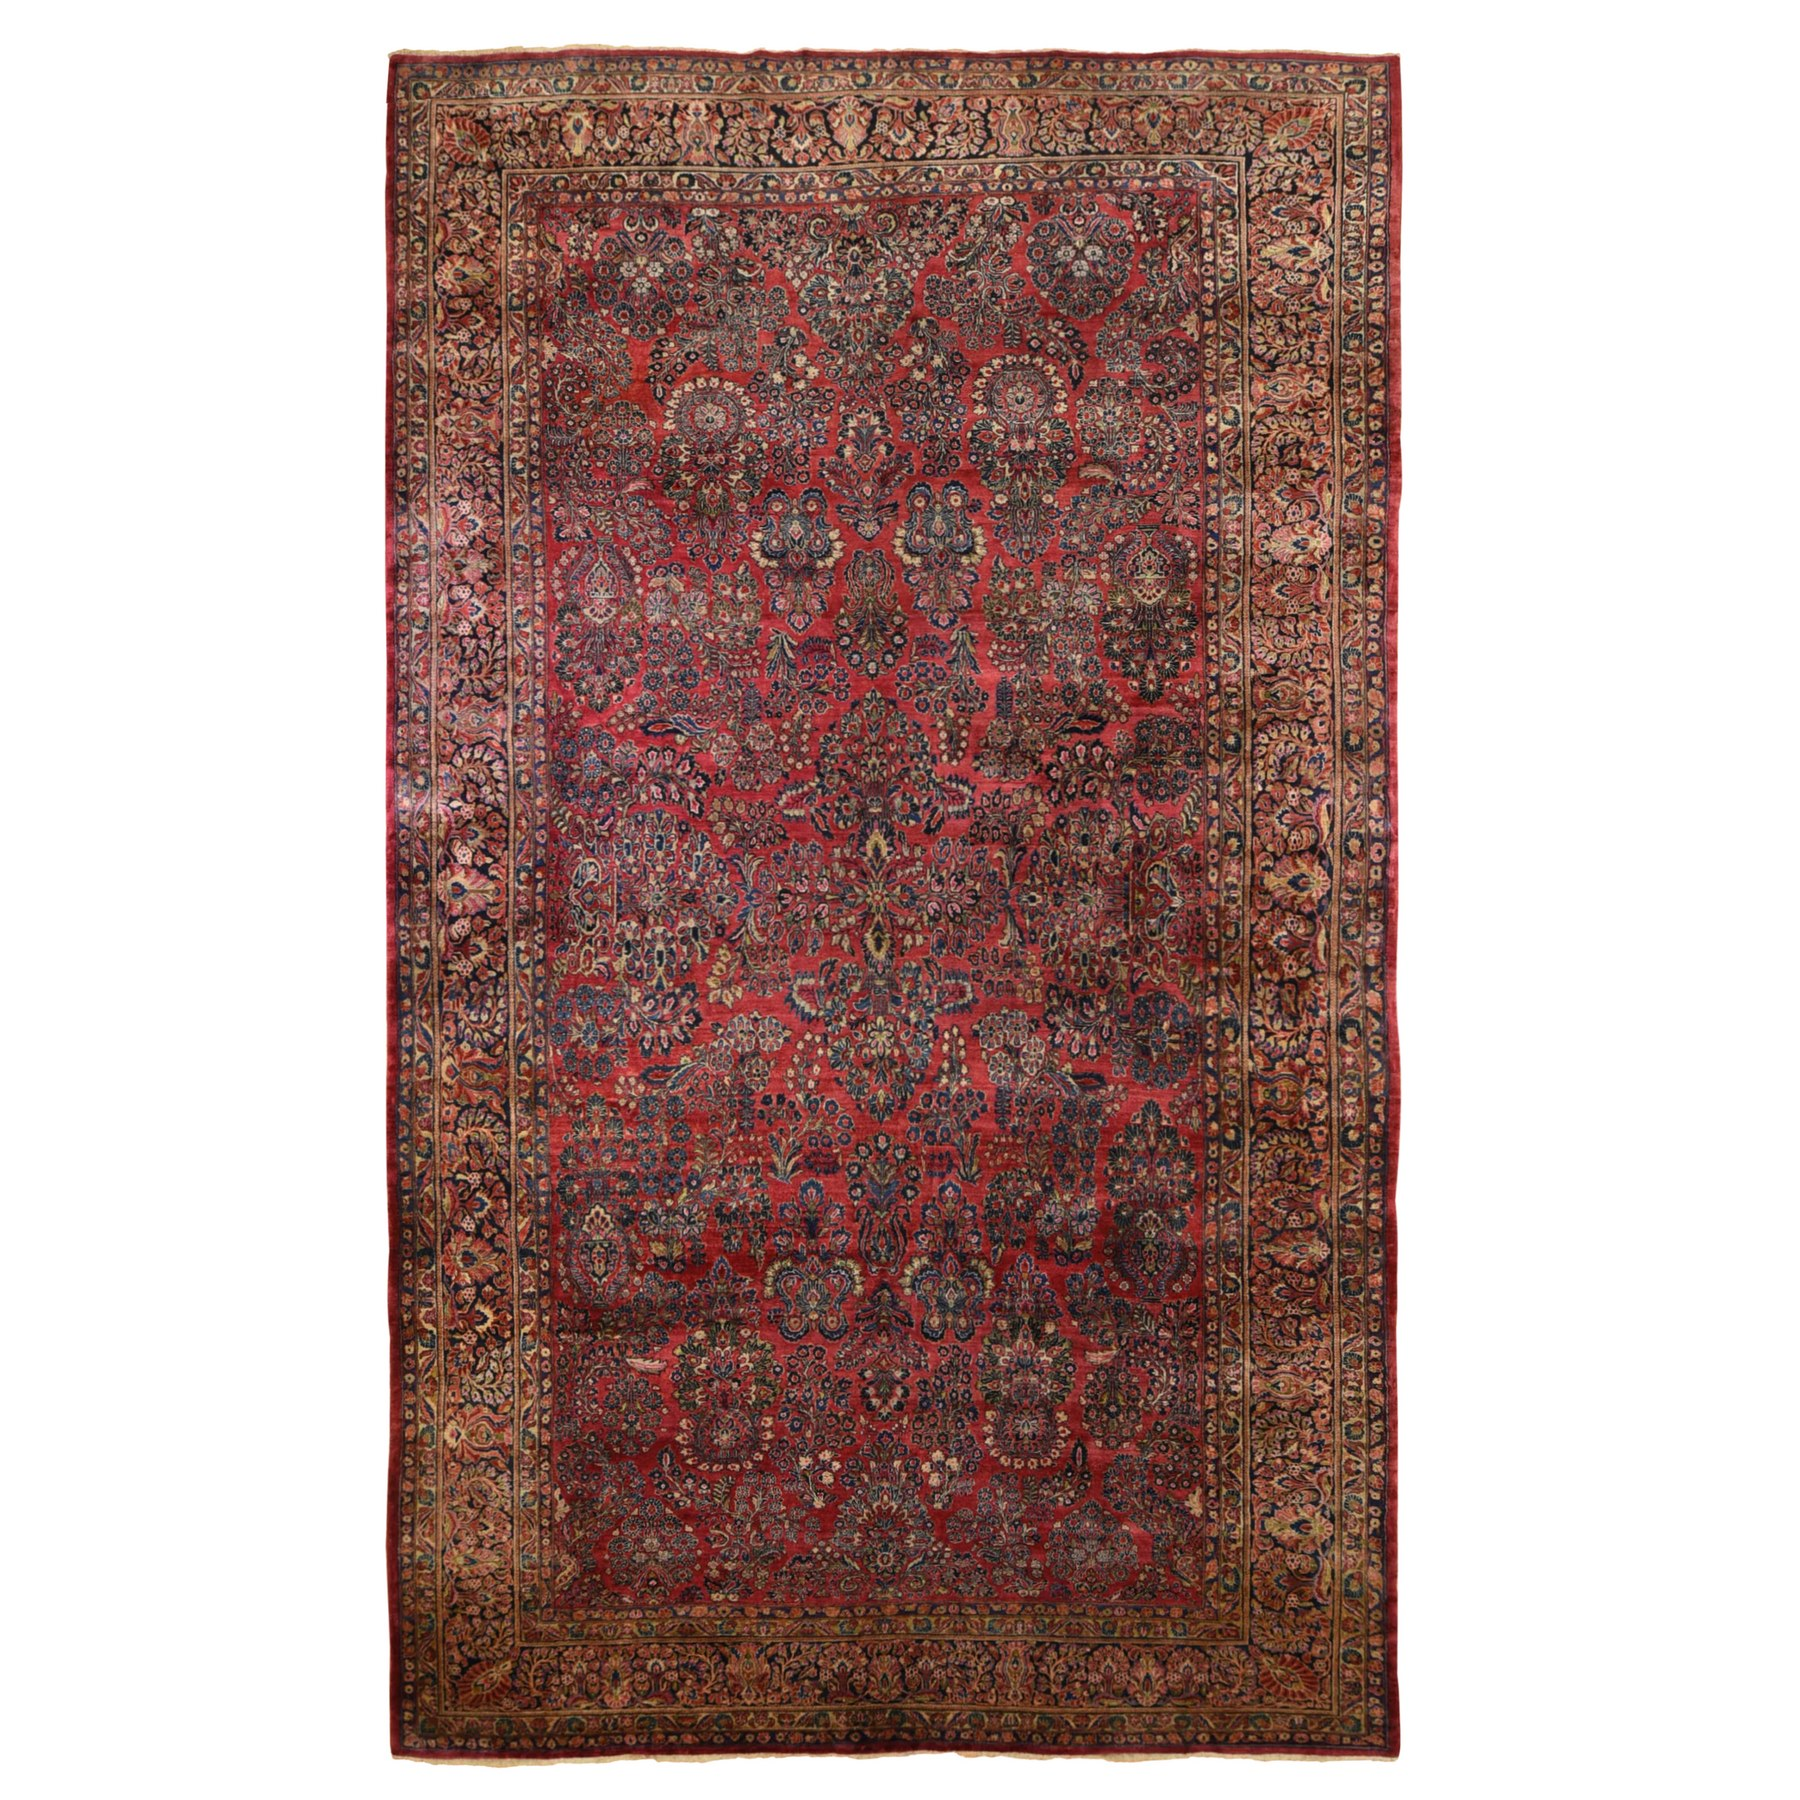 Antique Rugs LUV599823